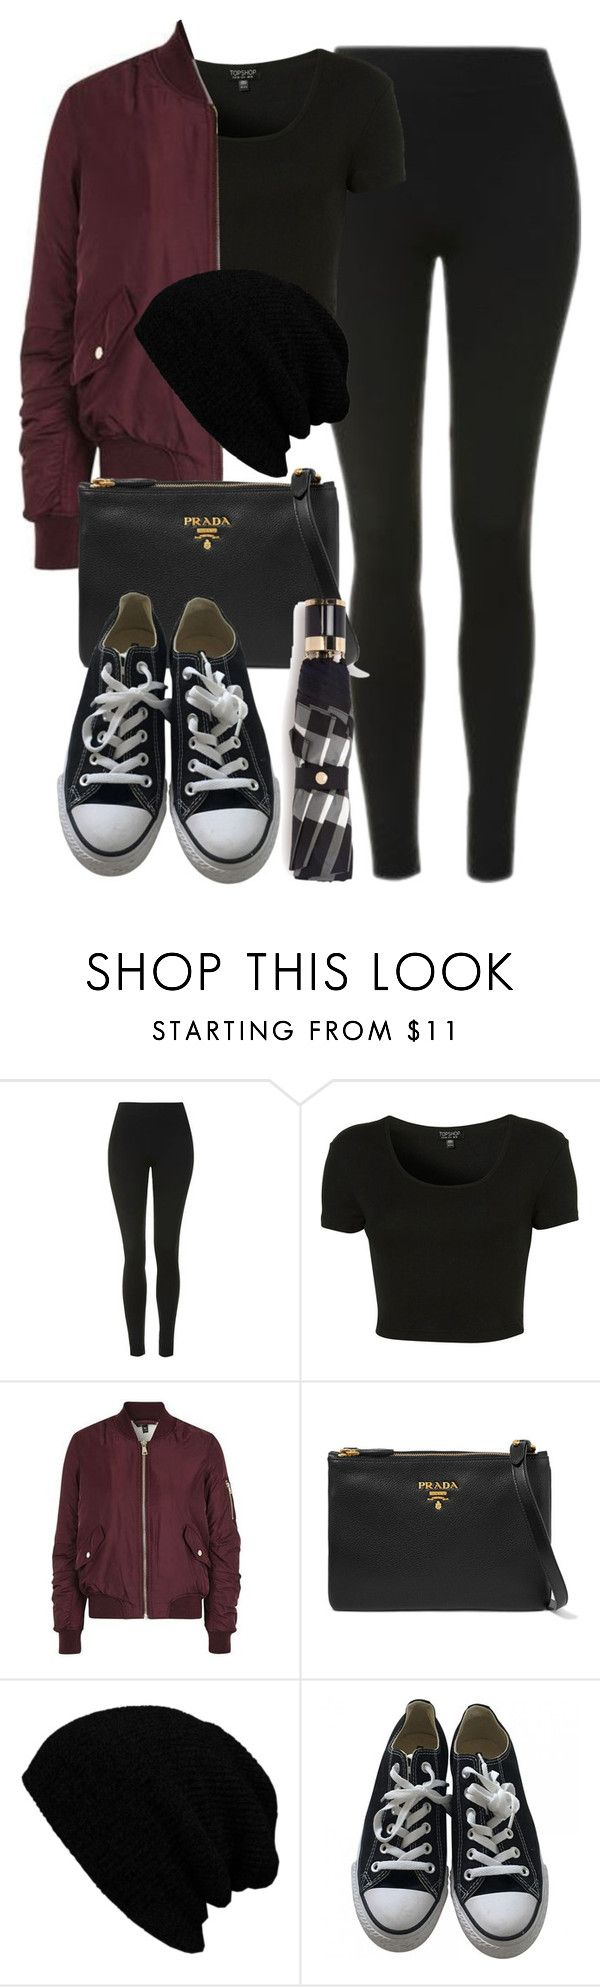 """""""Style #11078"""" by vany-alvarado ❤ liked on Polyvore featuring Topshop, Prada, KBETHOS, Converse and Burberry"""